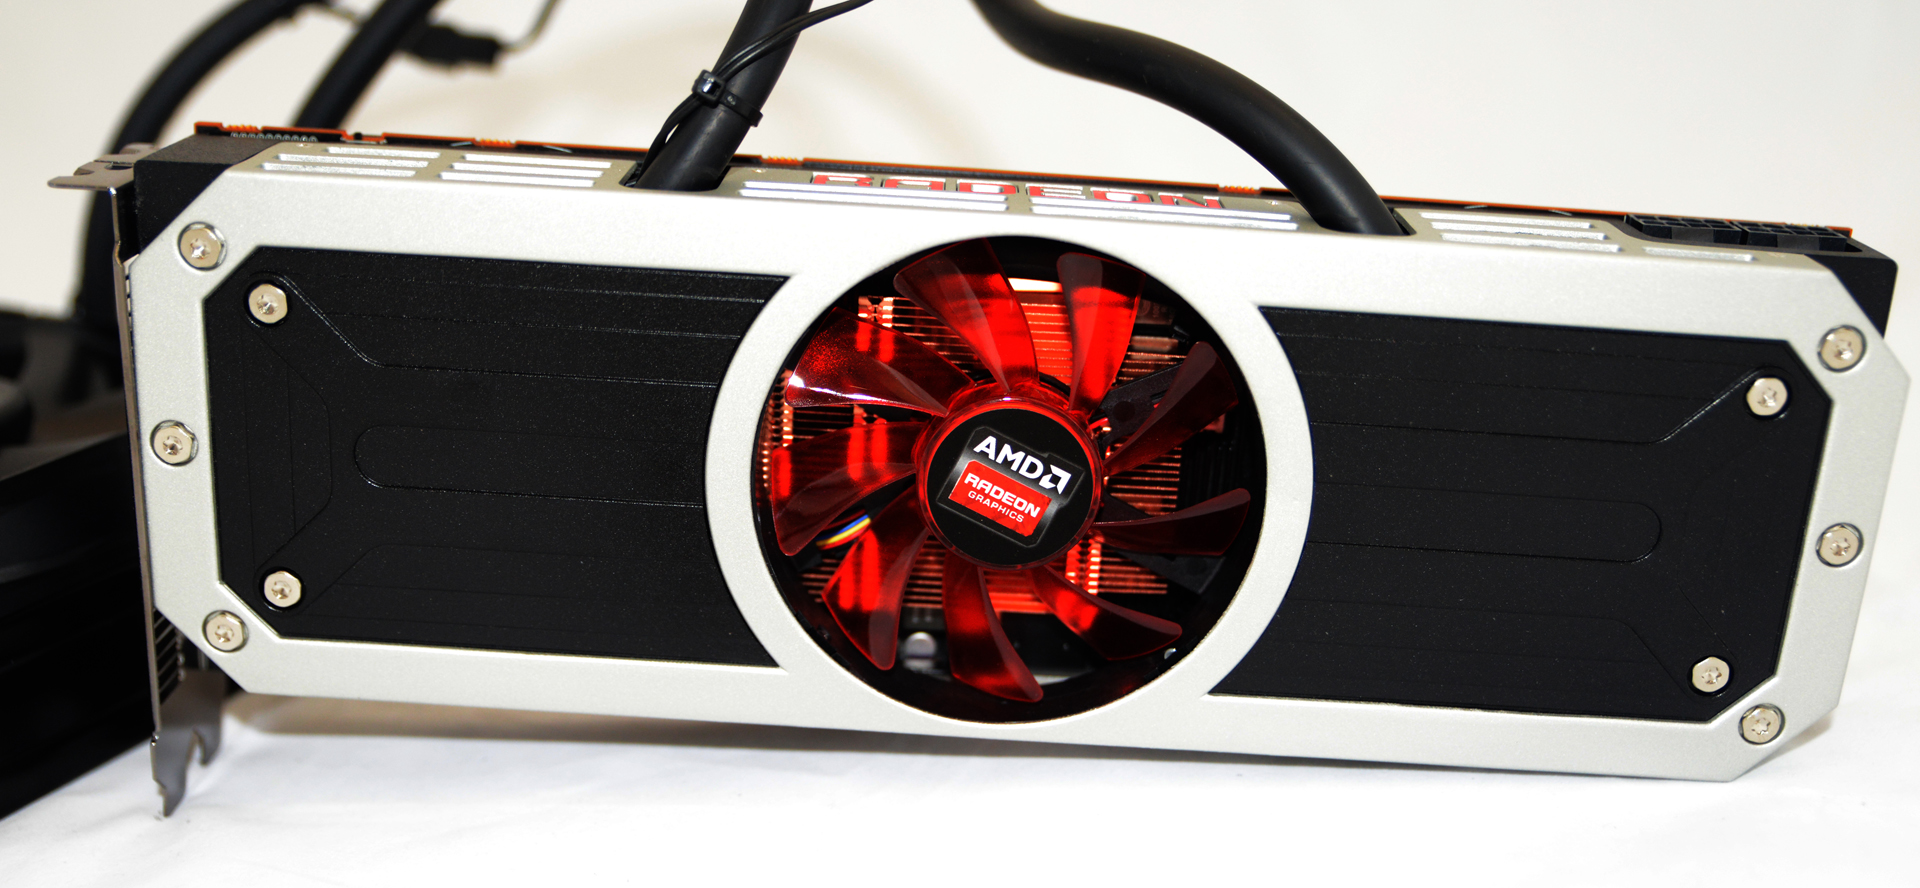 AMD Radeon R9 295X2 Review: The Definitive 4K Gaming Graphics Card